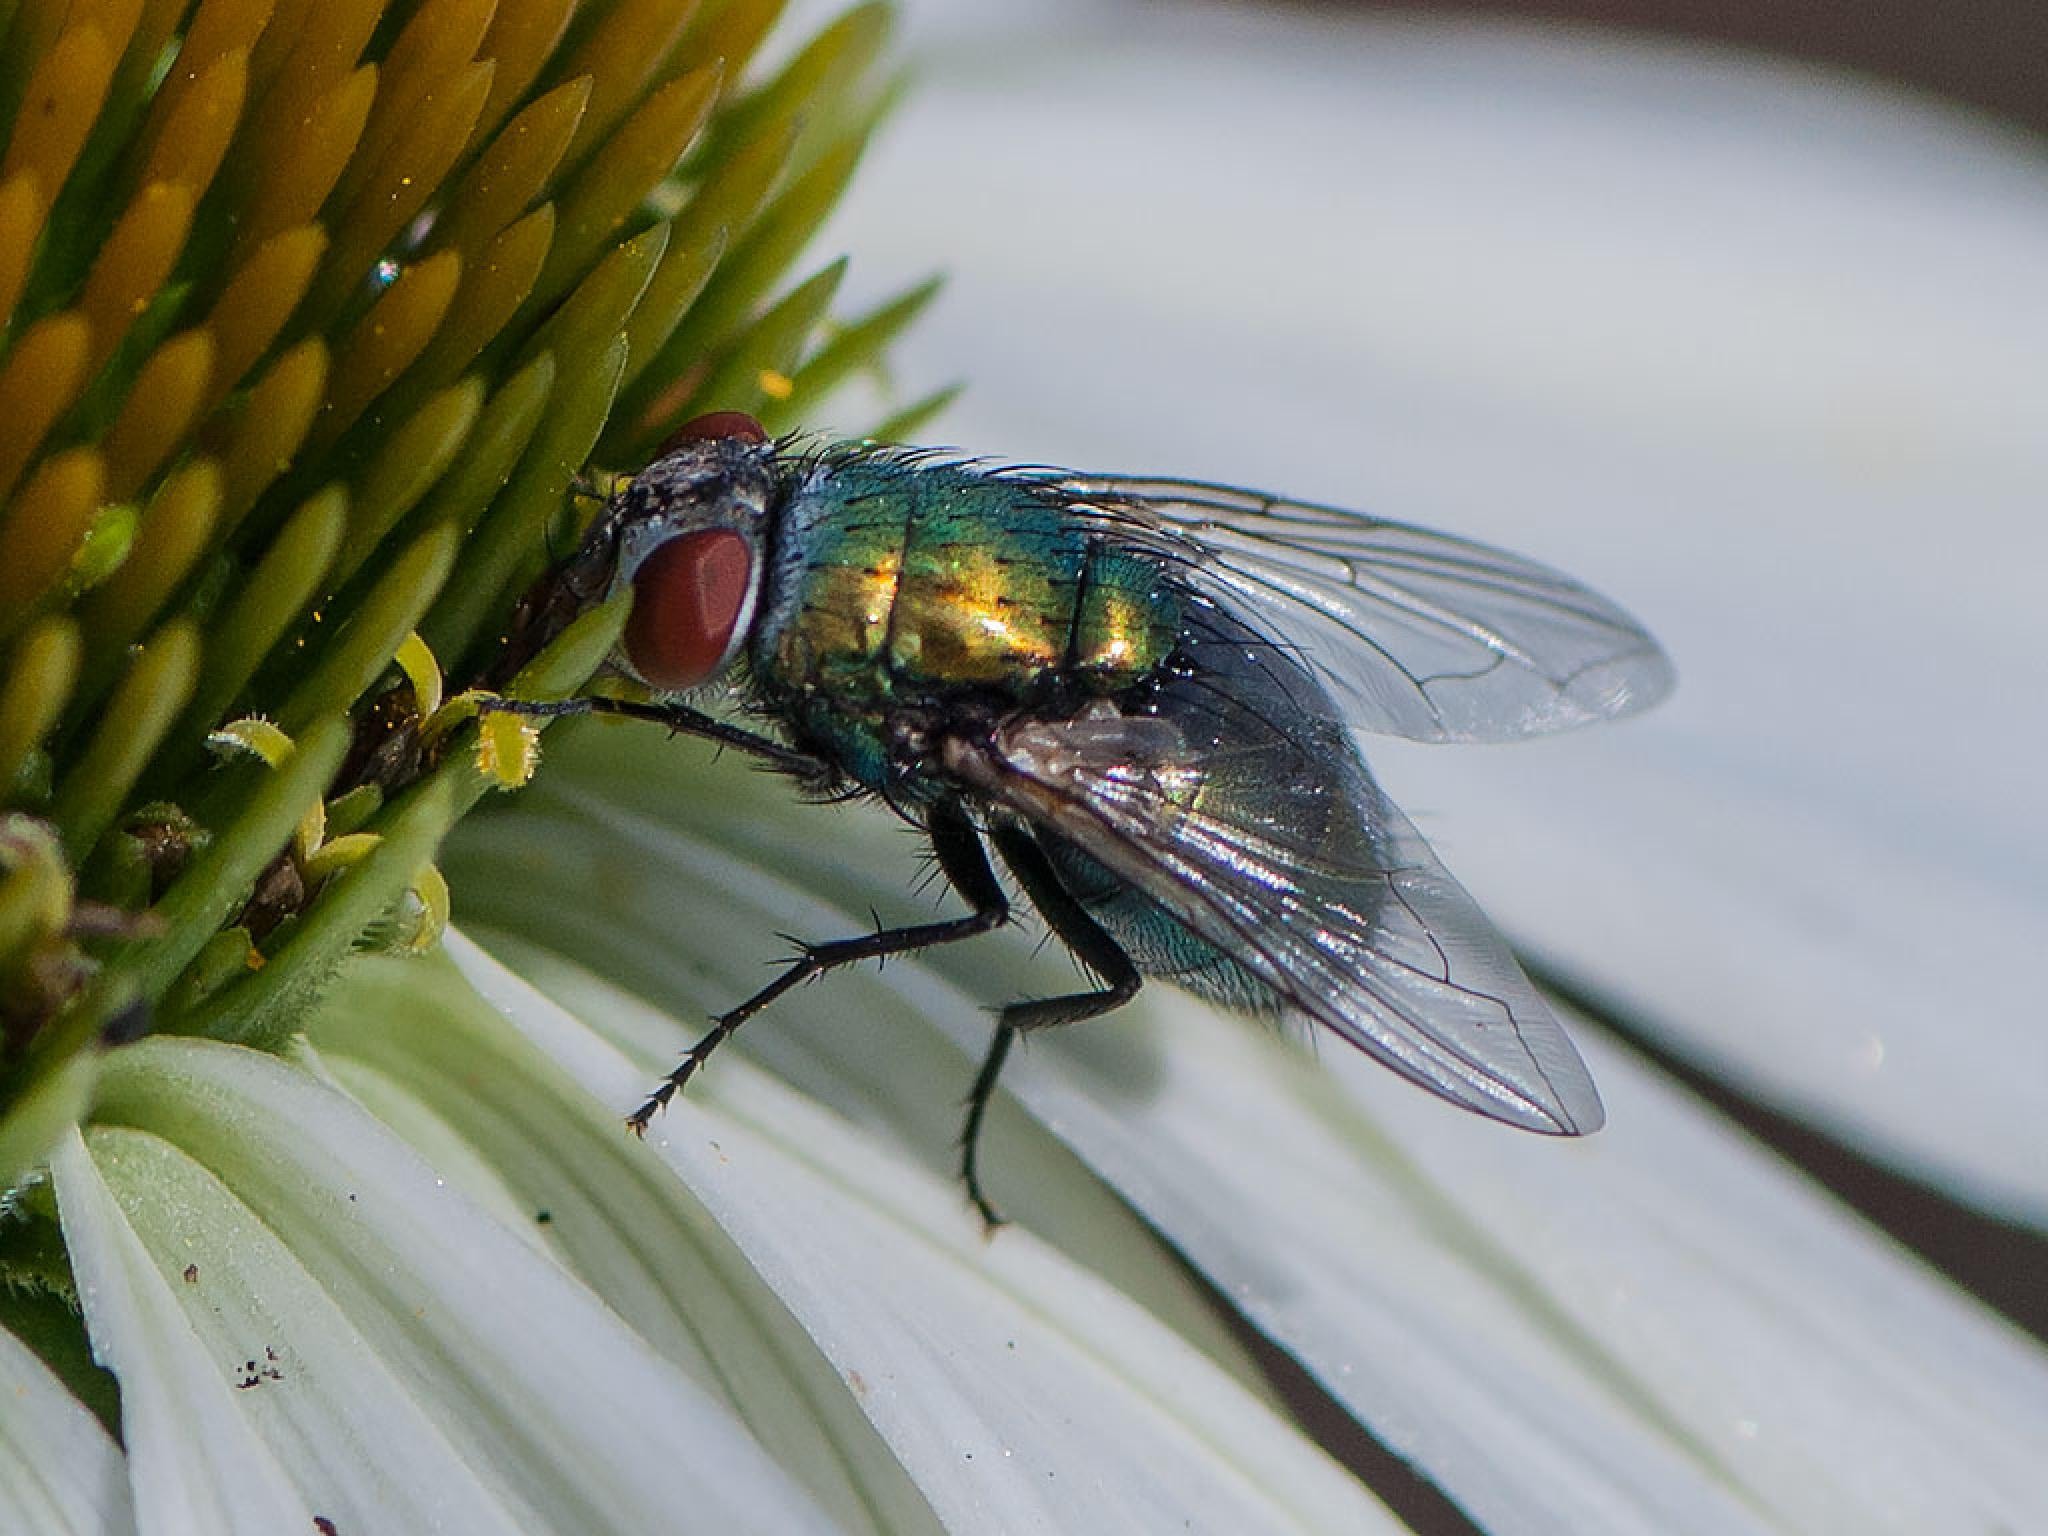 Fly On A Flower by linda.smith.754365